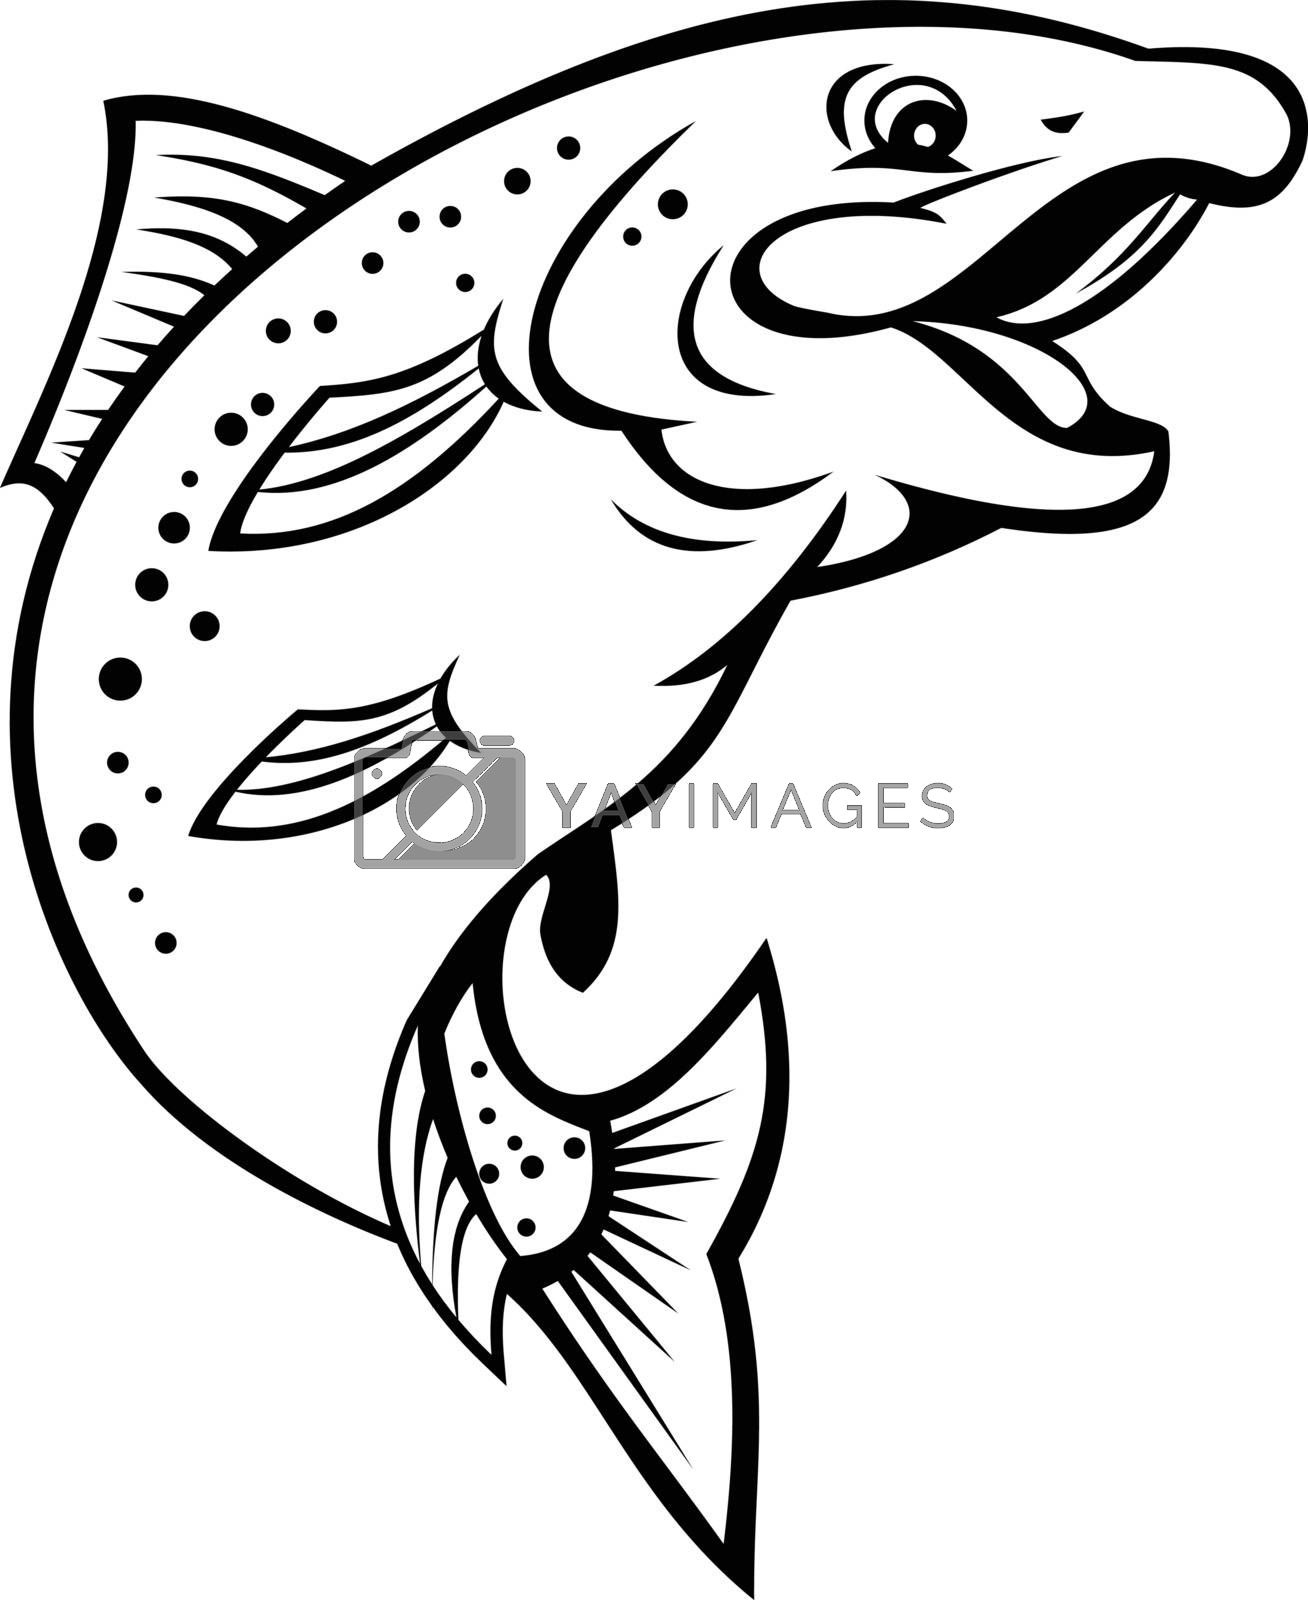 Cartoon style illustration of a happy rainbow trout or salmon fish jumping up on isolated white background in black and white.